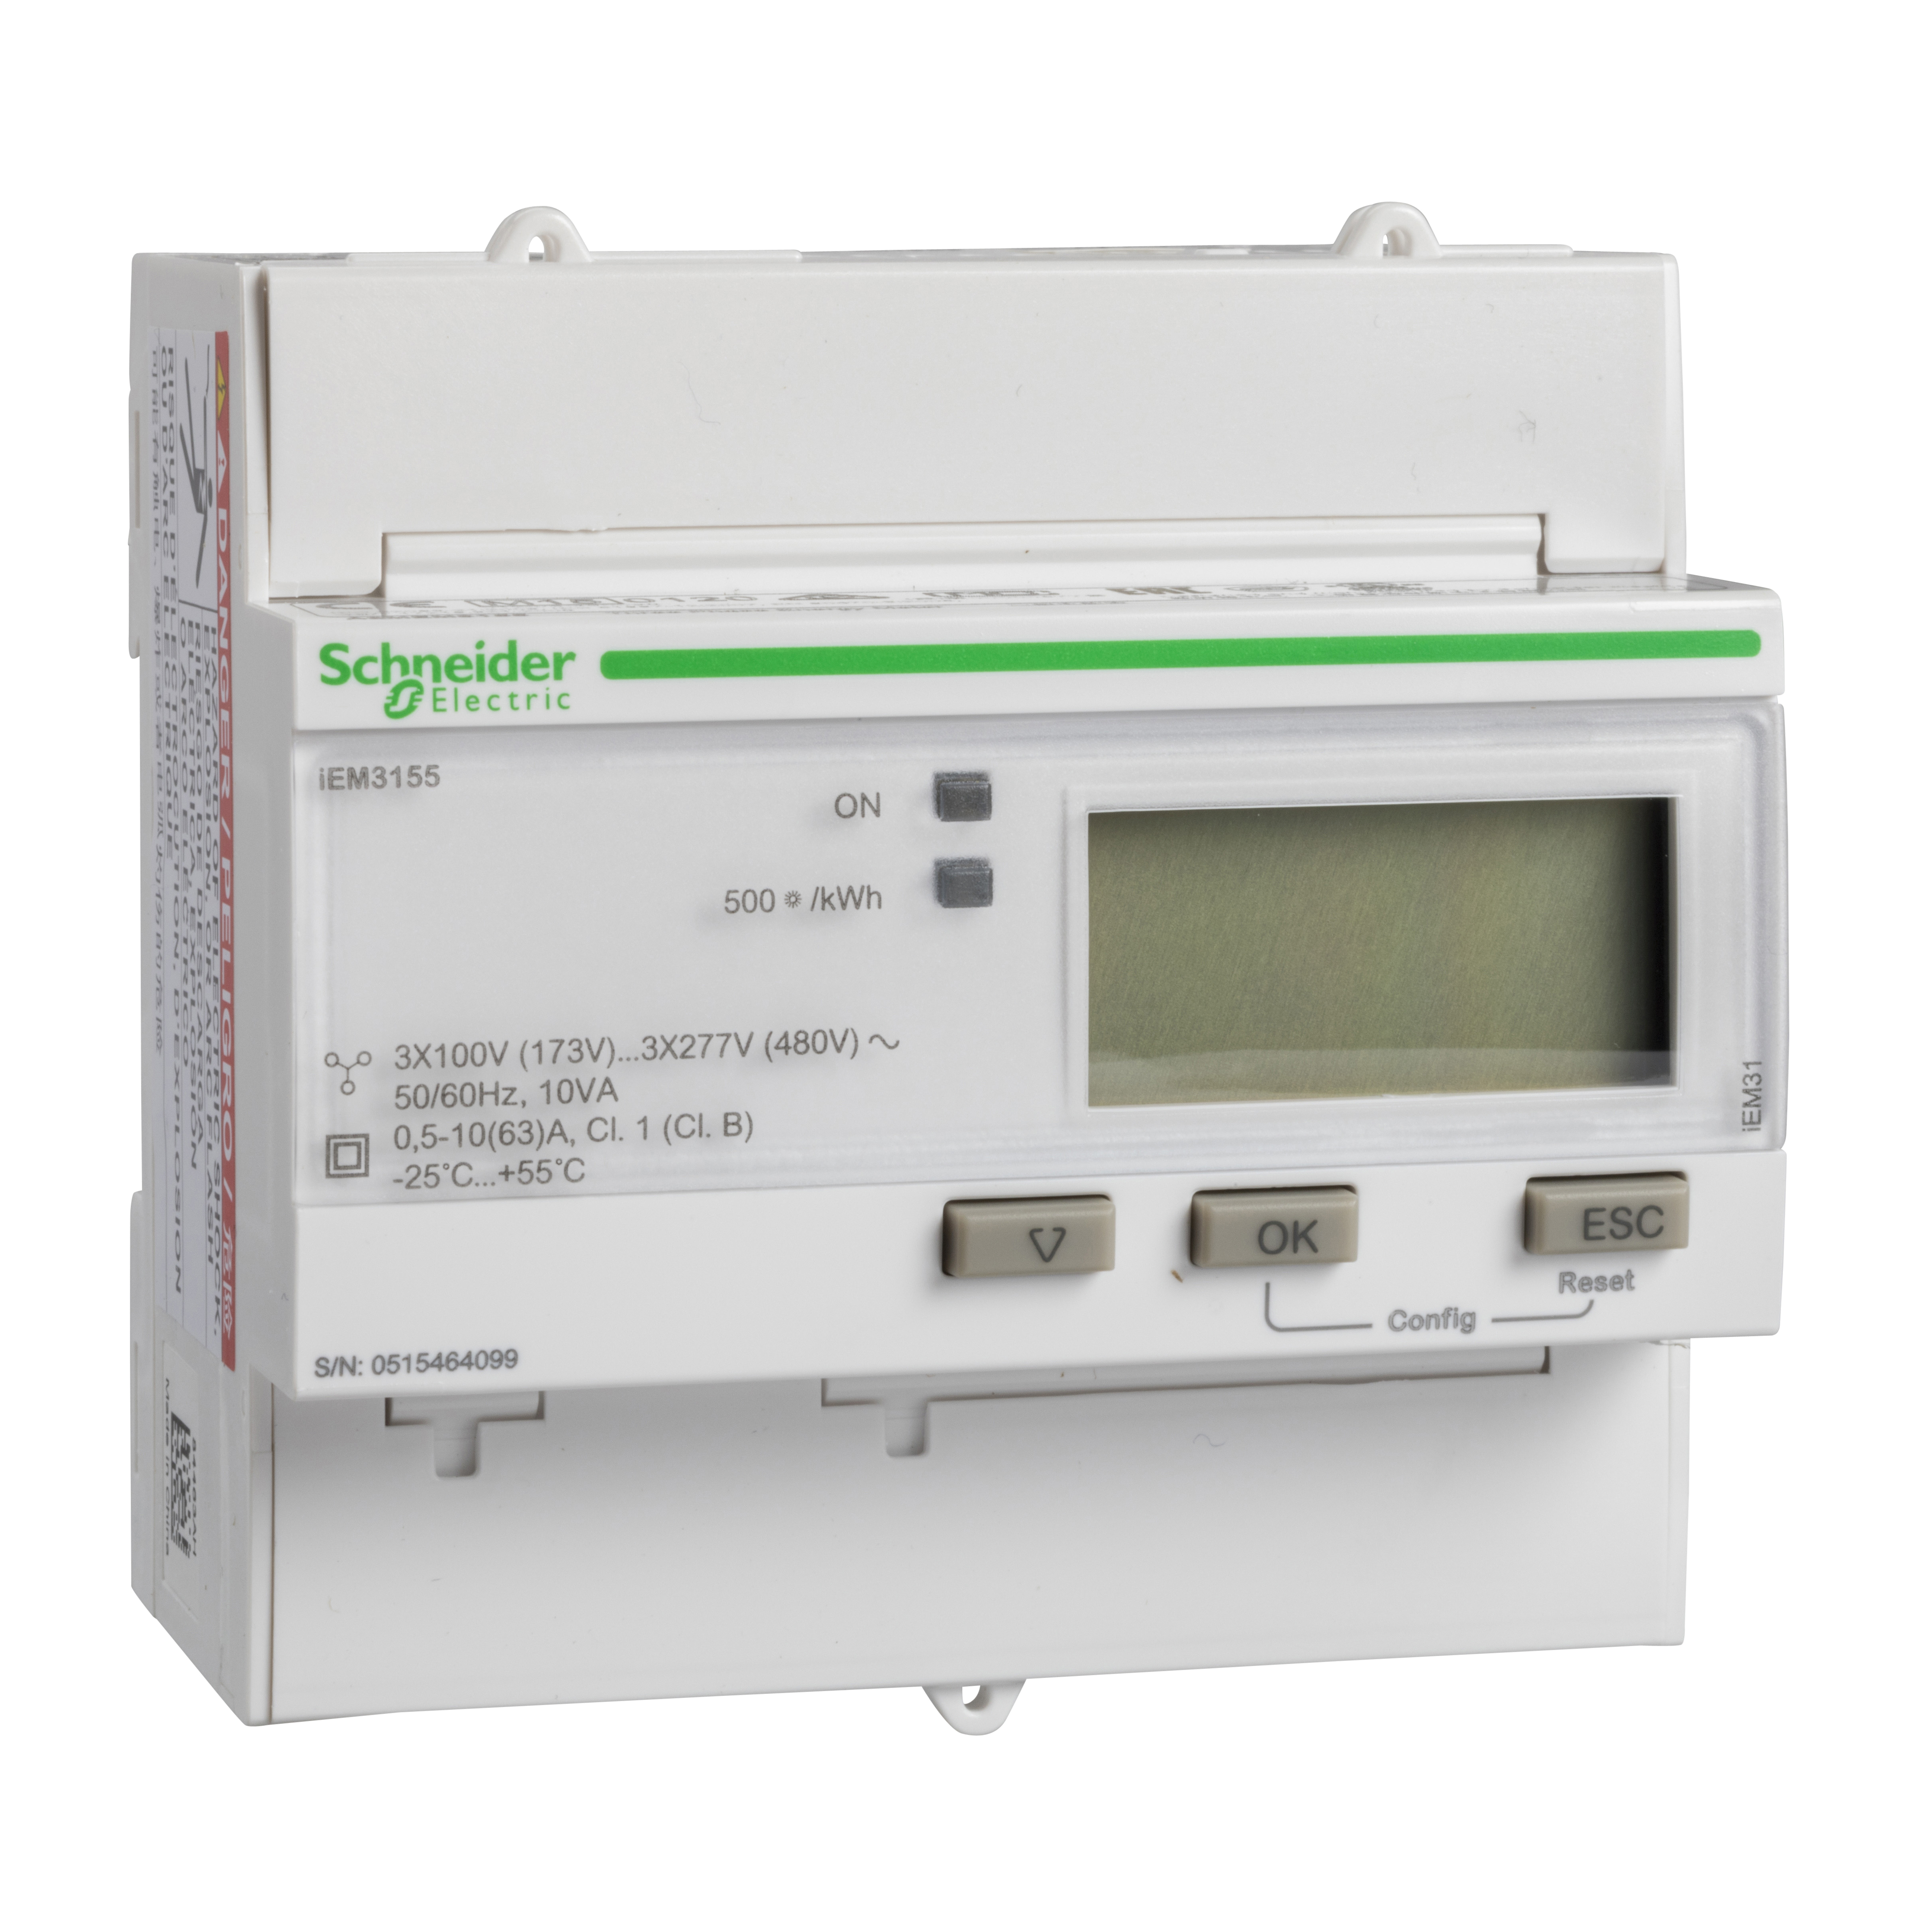 Schneider Sea9bn3155 Mid 3 Phase Kwh Kit How To Wire 3phase Meter Electrical Technology